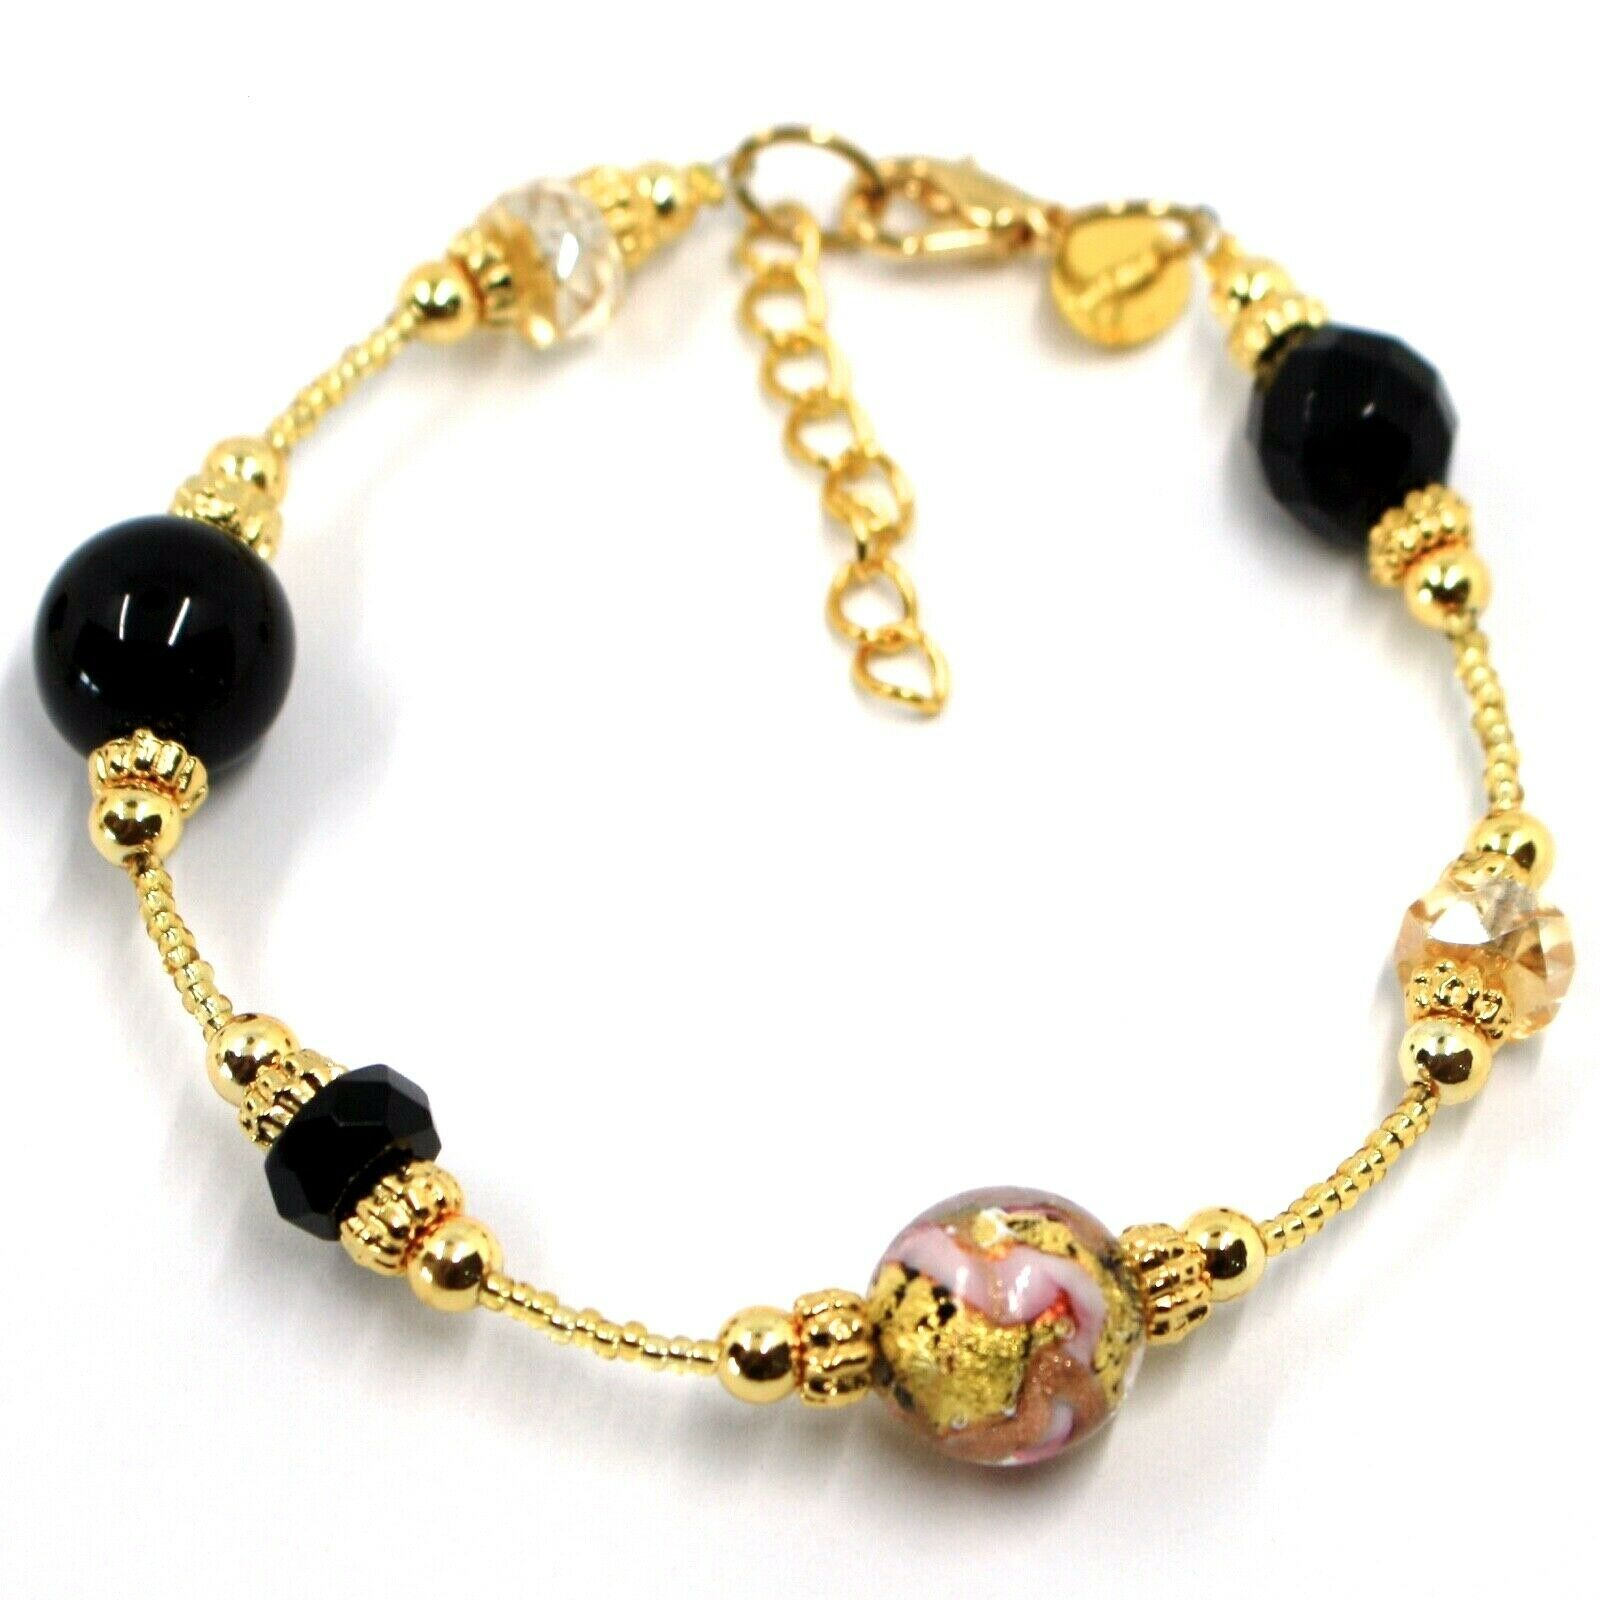 BRACELET PINK & YELLOW STRIPED MURANO GLASS SPHERE & GOLD LEAF, MADE IN ITALY